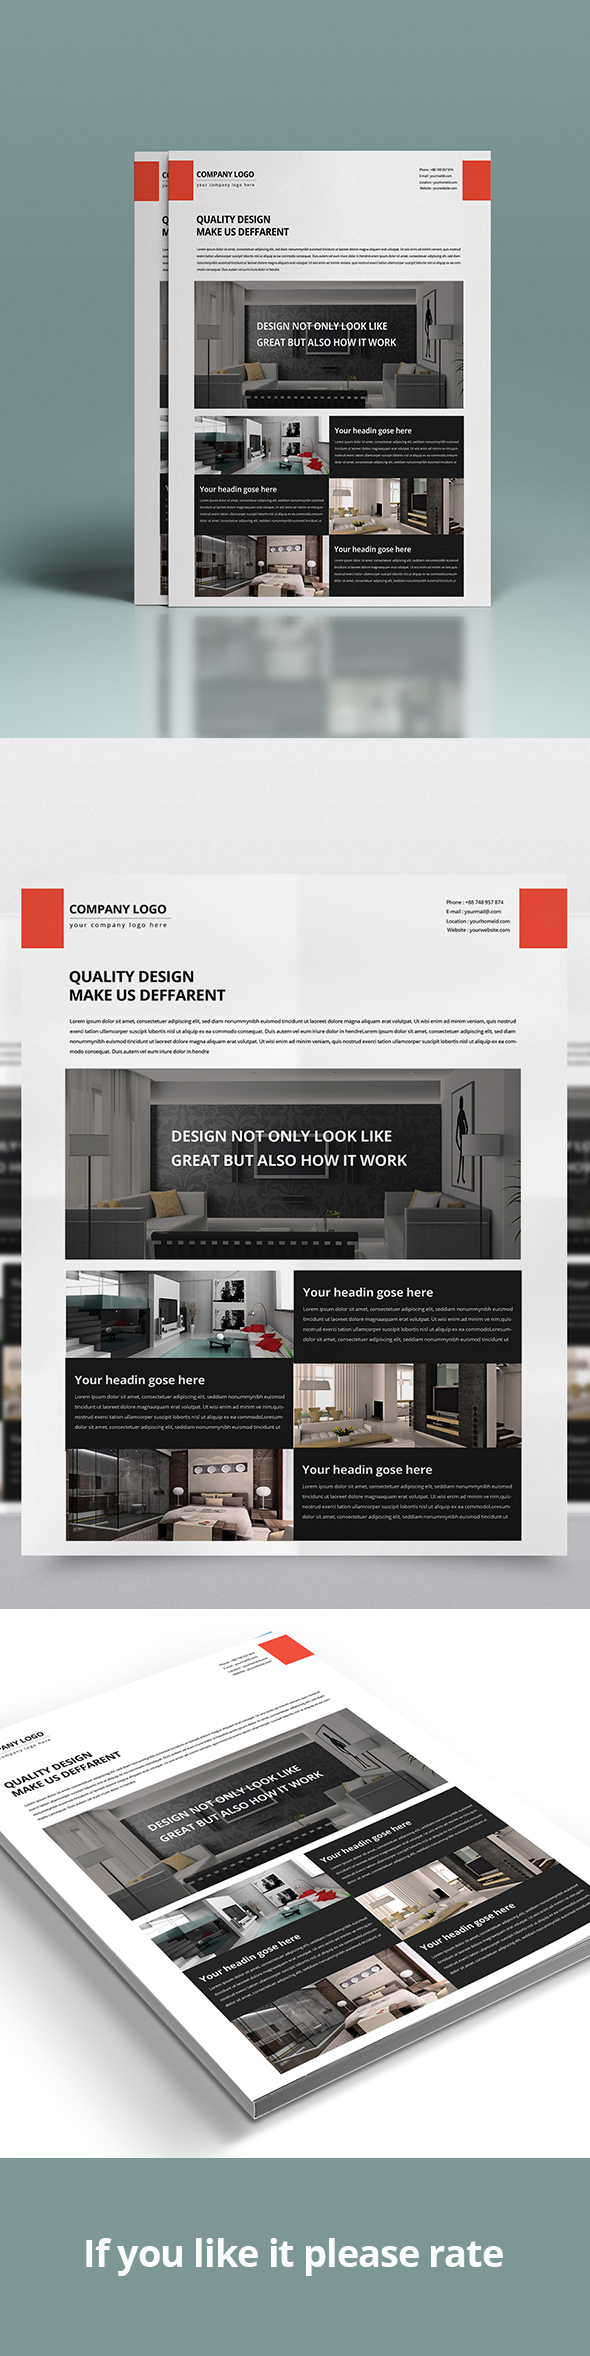 corporate business flyer template house interiors architecture advertisement agent architecture black brown building business elegant